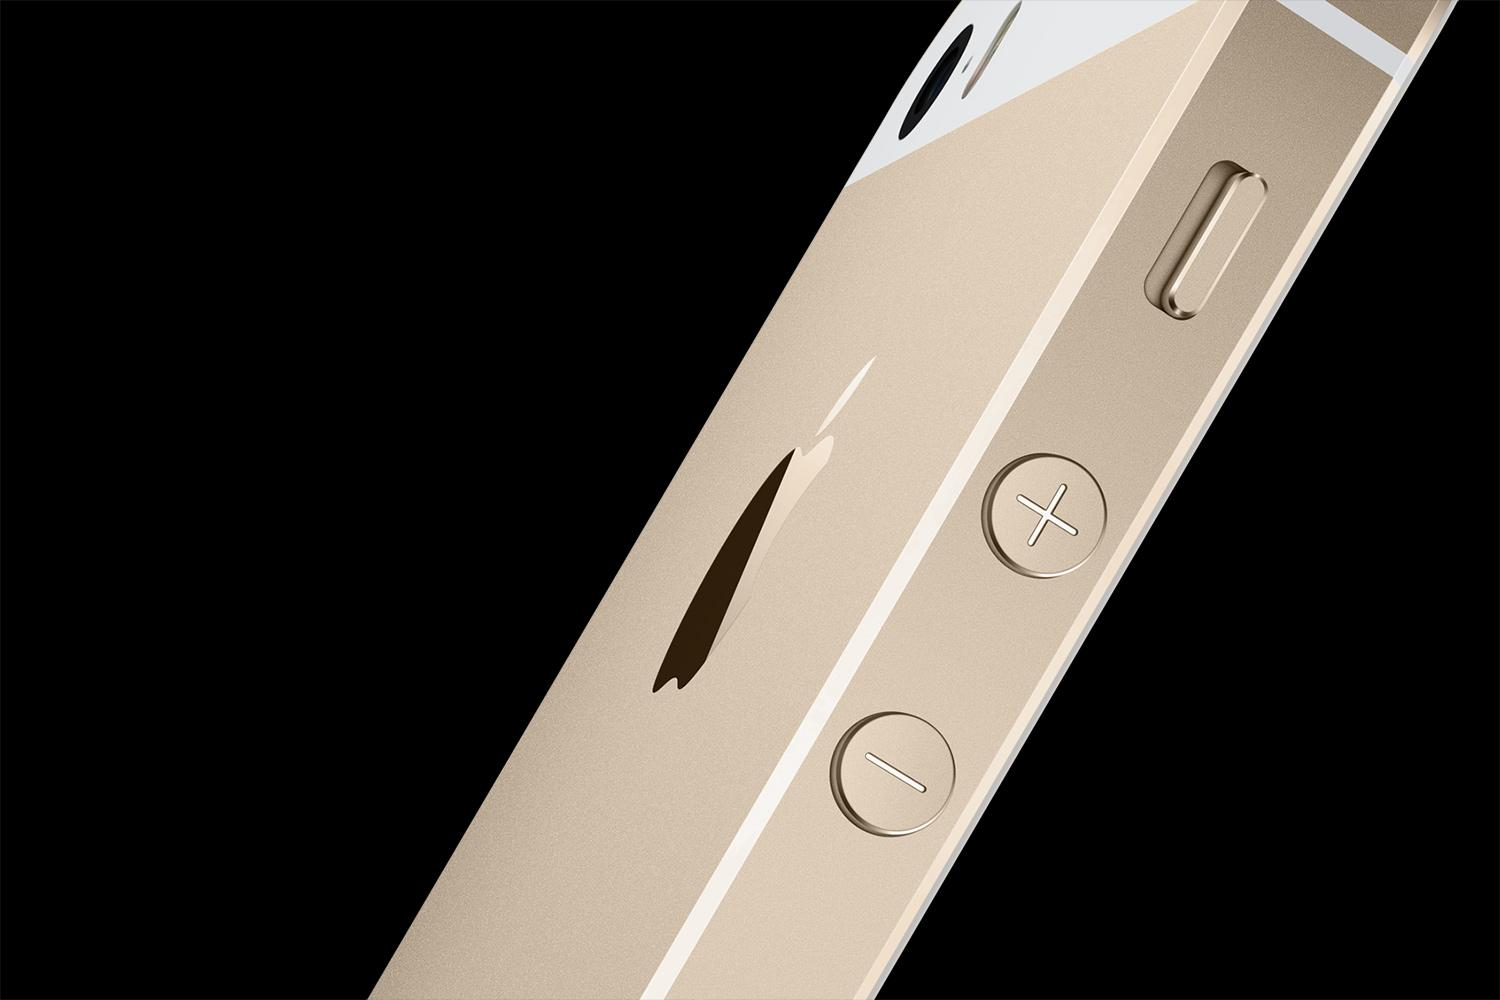 iphone-5s-gold-side.jpg